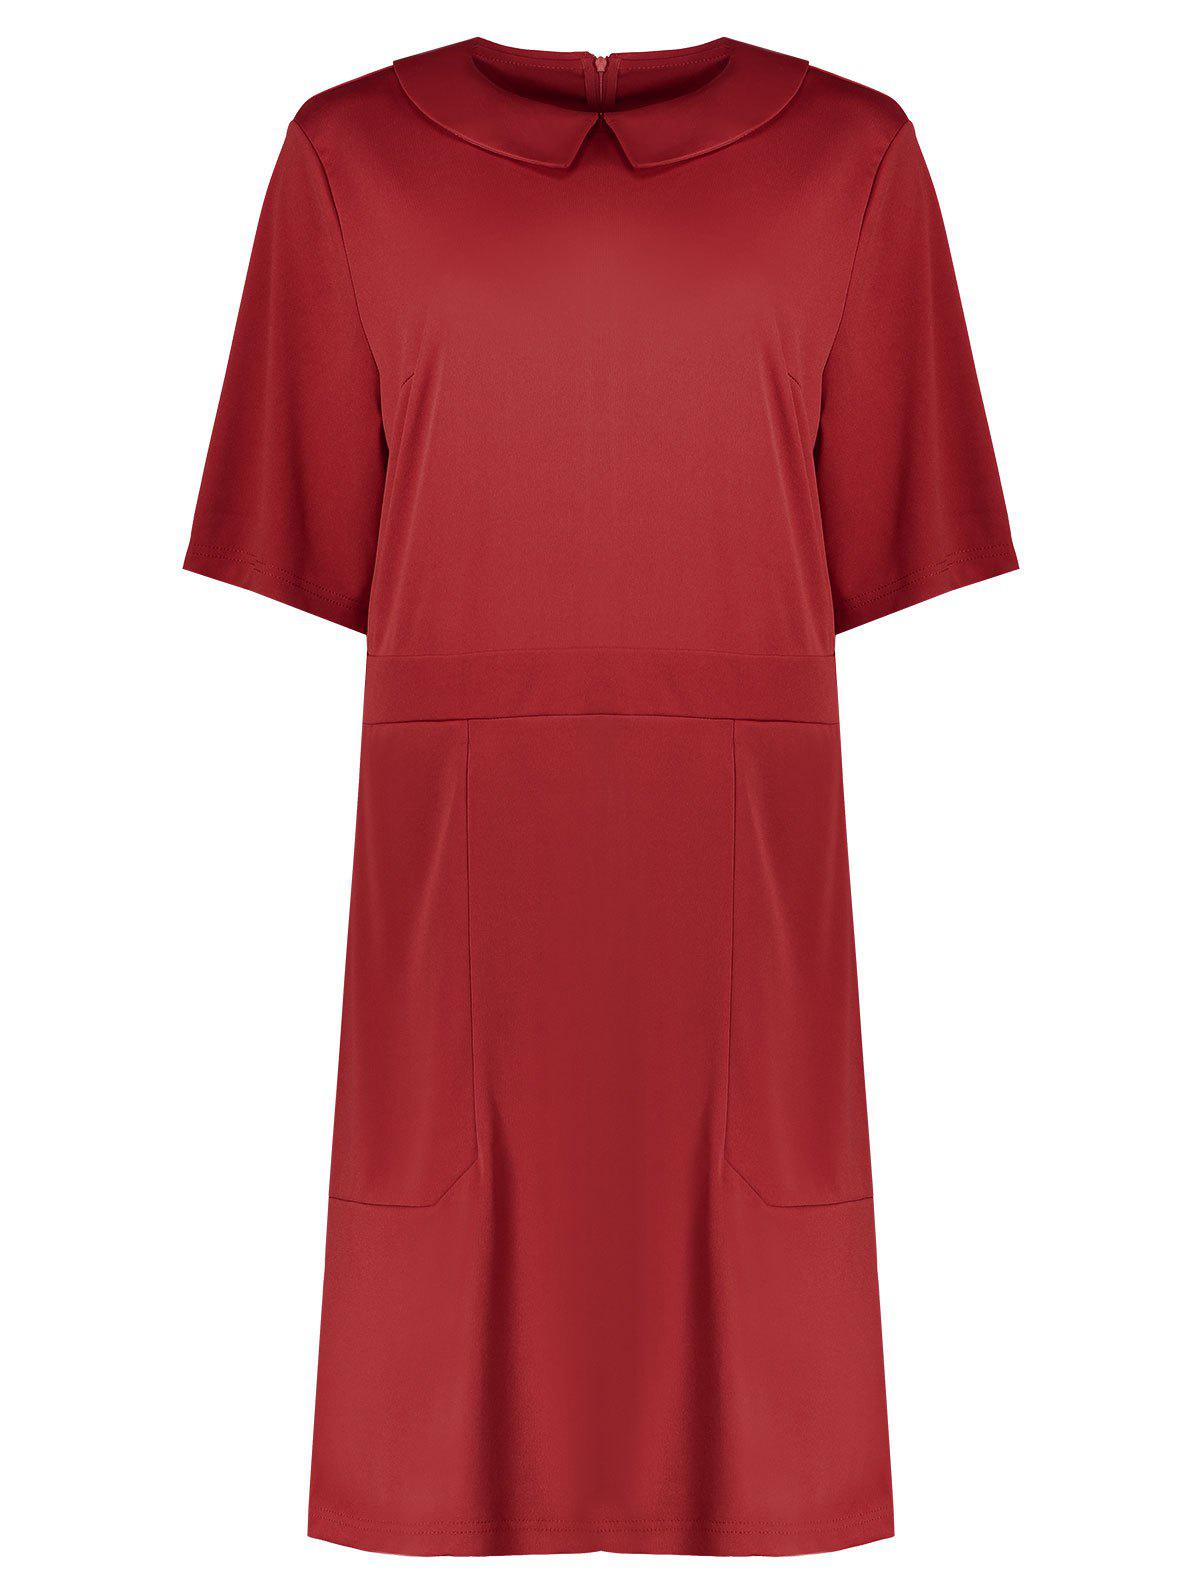 Plus Size Collared A Line Dress with Pockets - RED 2XL